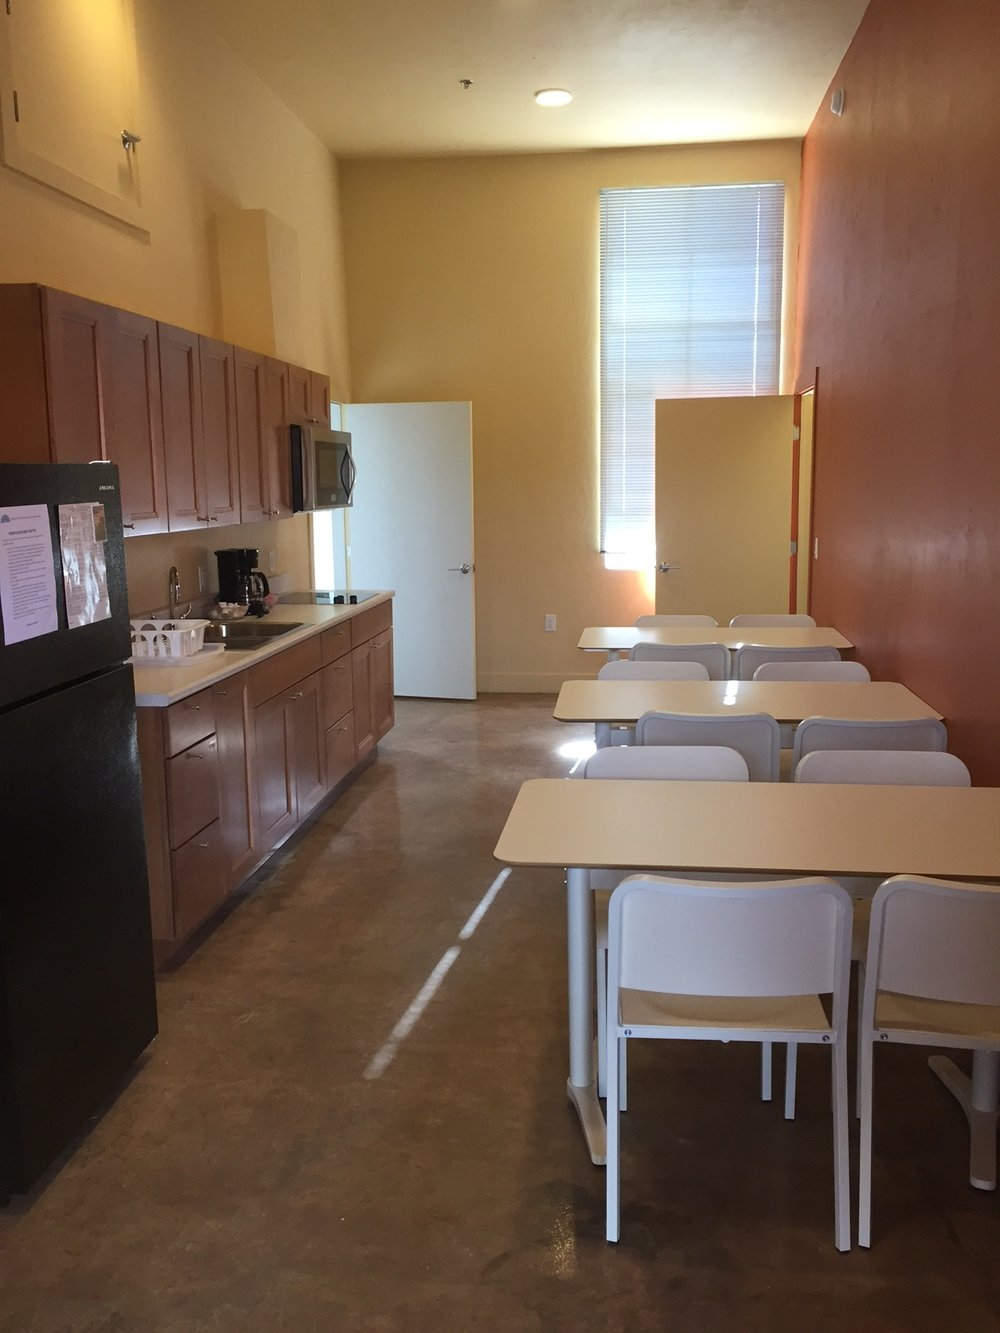 Dorm suite kitchen with full-sized fridge, stove and convection oven, and seating for 12